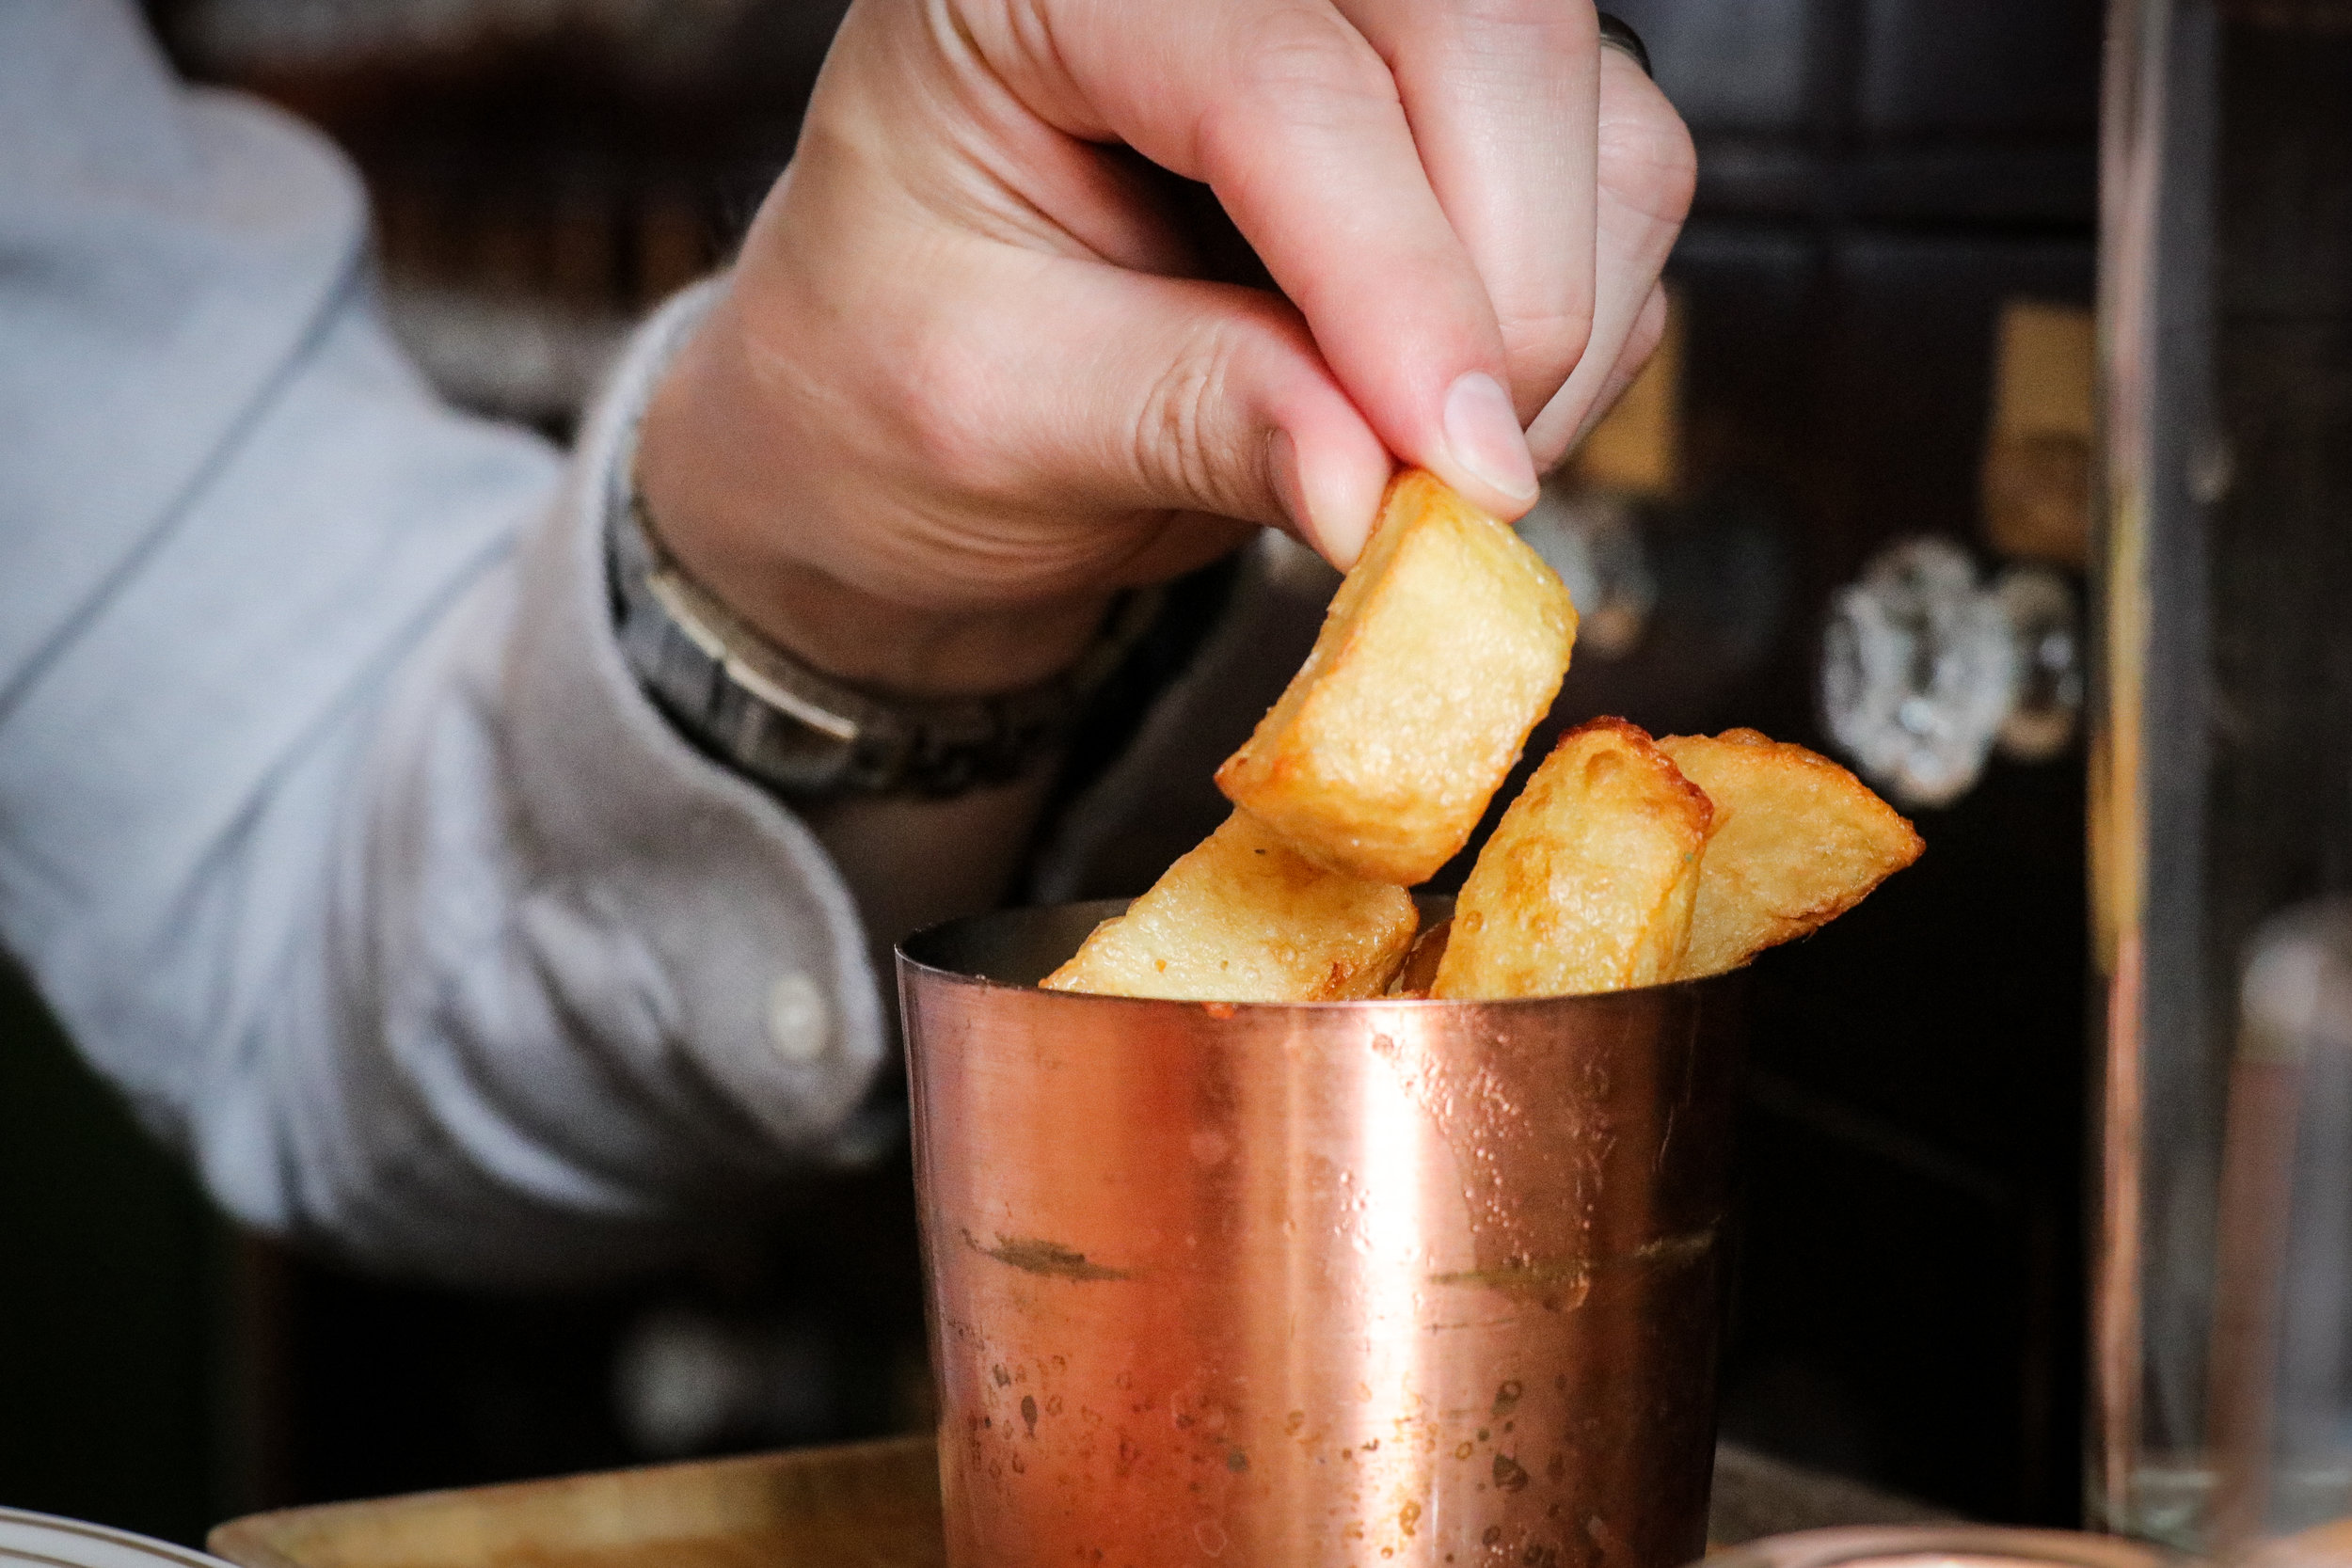 'No.15 Triple-Cooked Chips, Rosemary Salt, Our Own Ketchup' (£5)